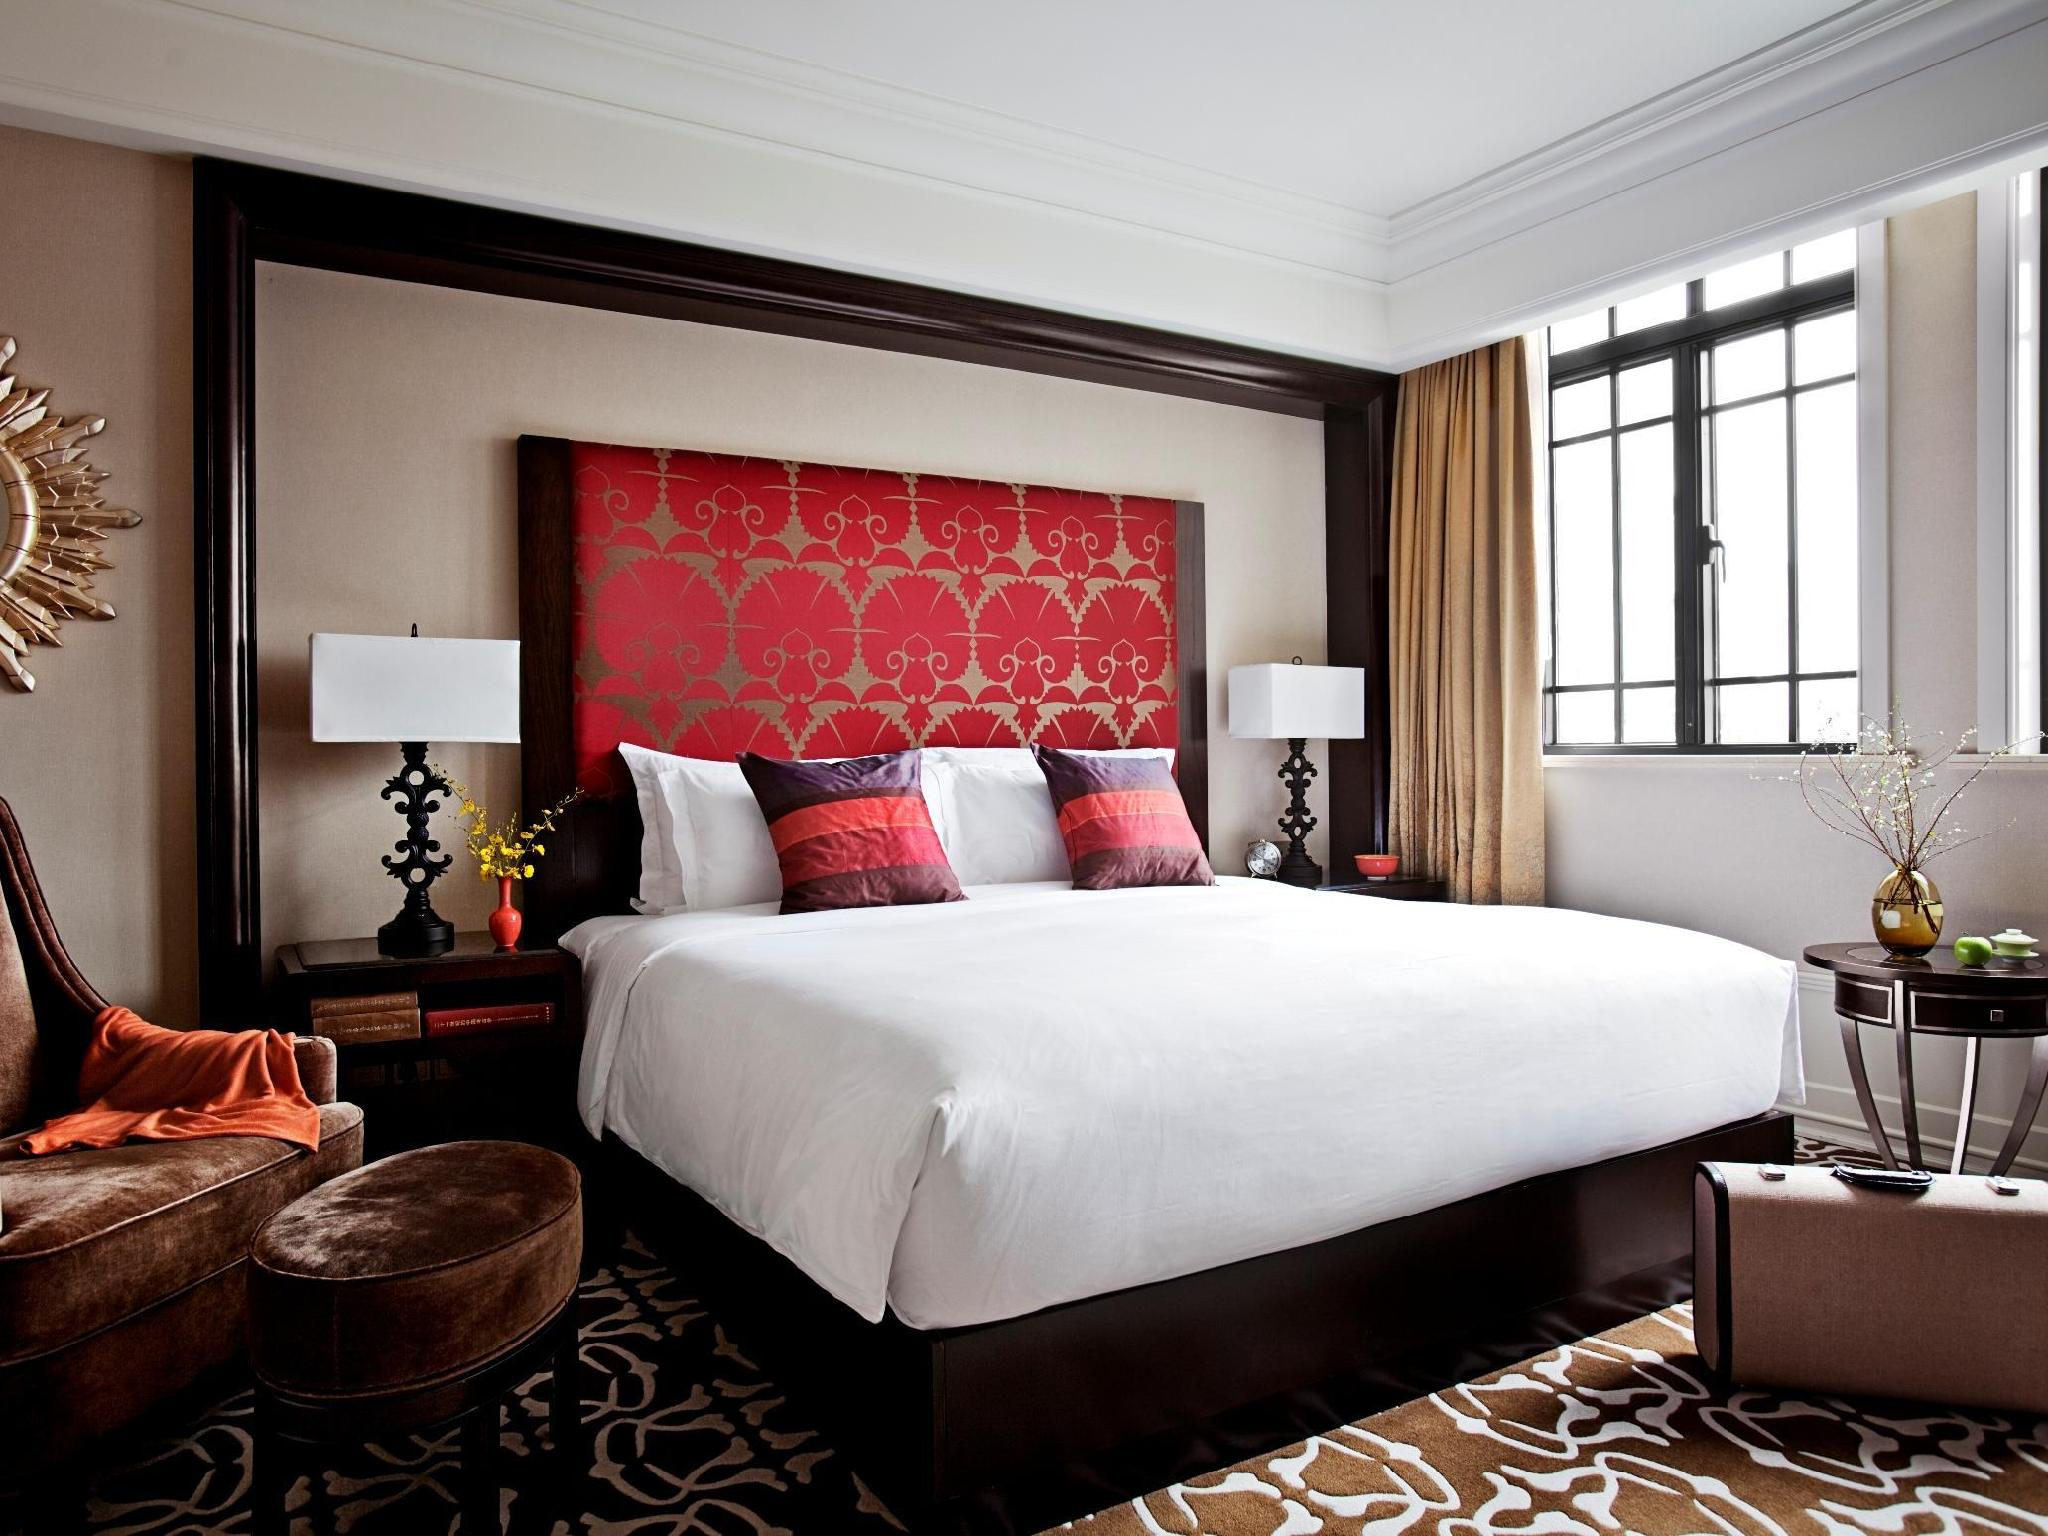 Upgrade gratis - Kamar Grand Double atau Twin Shanghai (free Upgrade - Shanghai Grand Double or Twin Room)